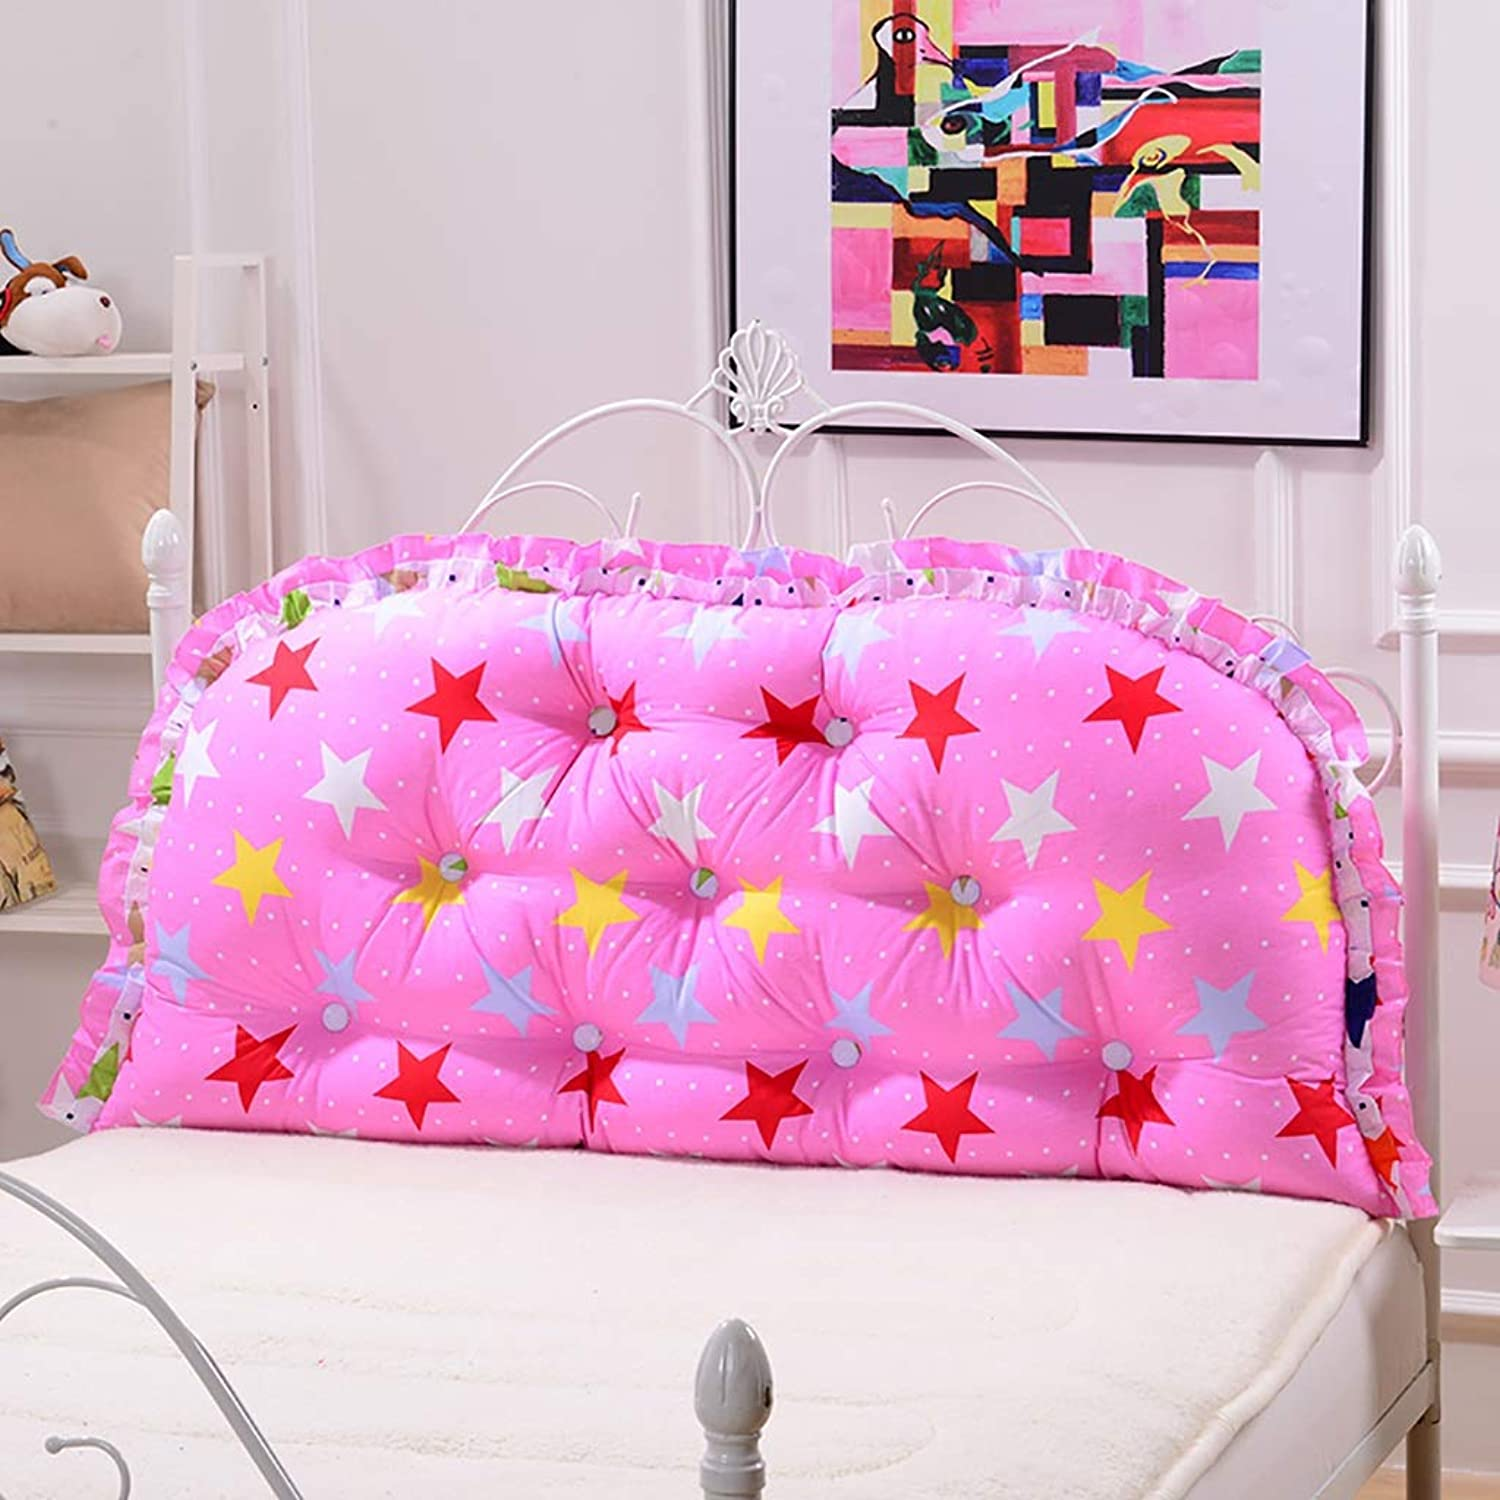 Headboard Bed Backrest Cushion Bed Cushion Bedside Pillow Cotton Soft Large Pillow Lumbar Support Detachable and Washable 11 Solid colors 4 (color   A10, Size   150  65cm)